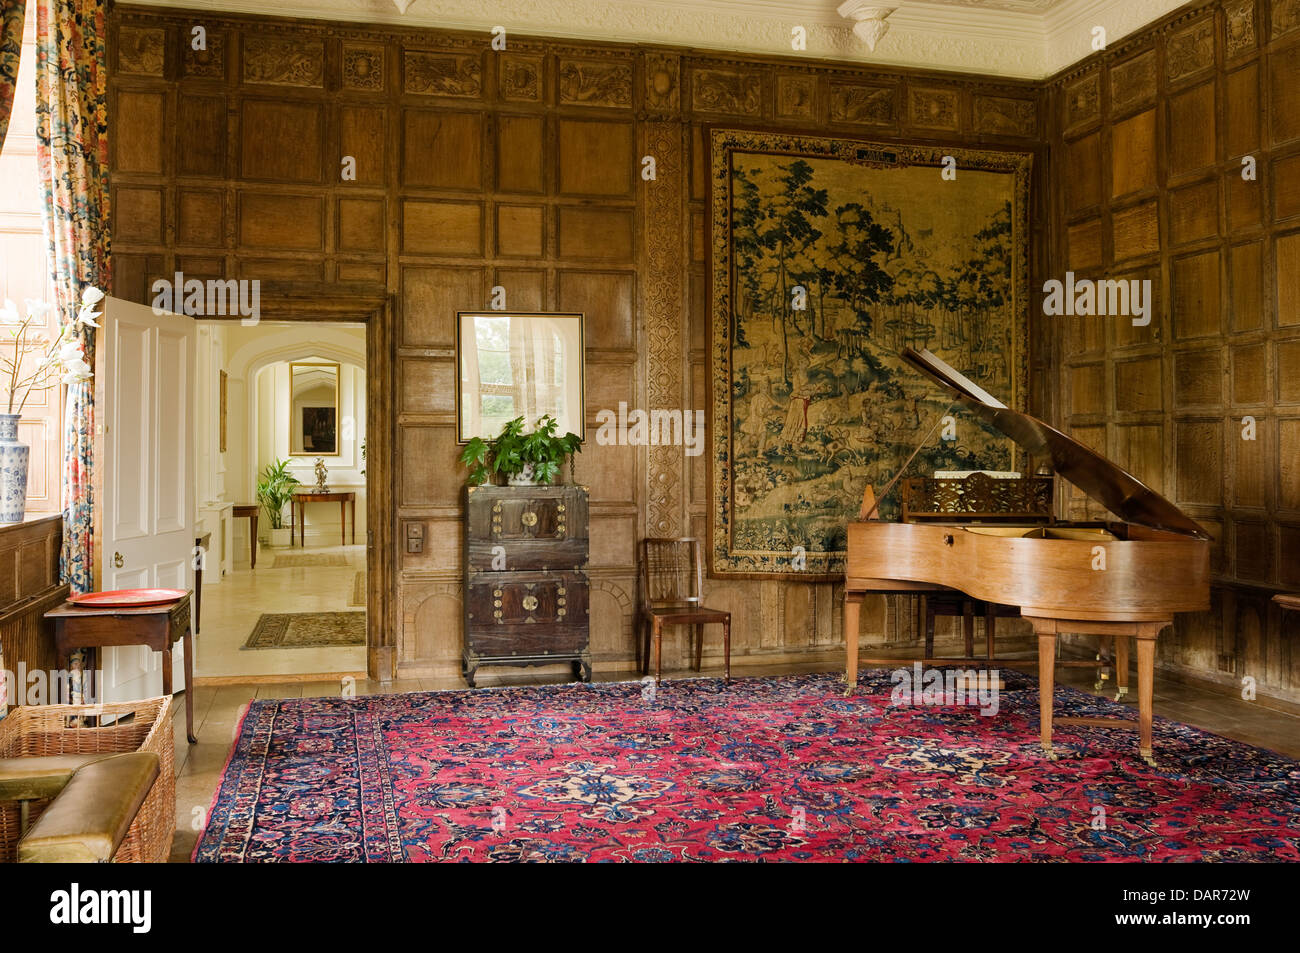 Jacobean oak paneled parlour with Flemish tapestry and grand piano in Ampney Park, 17th century English country - Stock Image